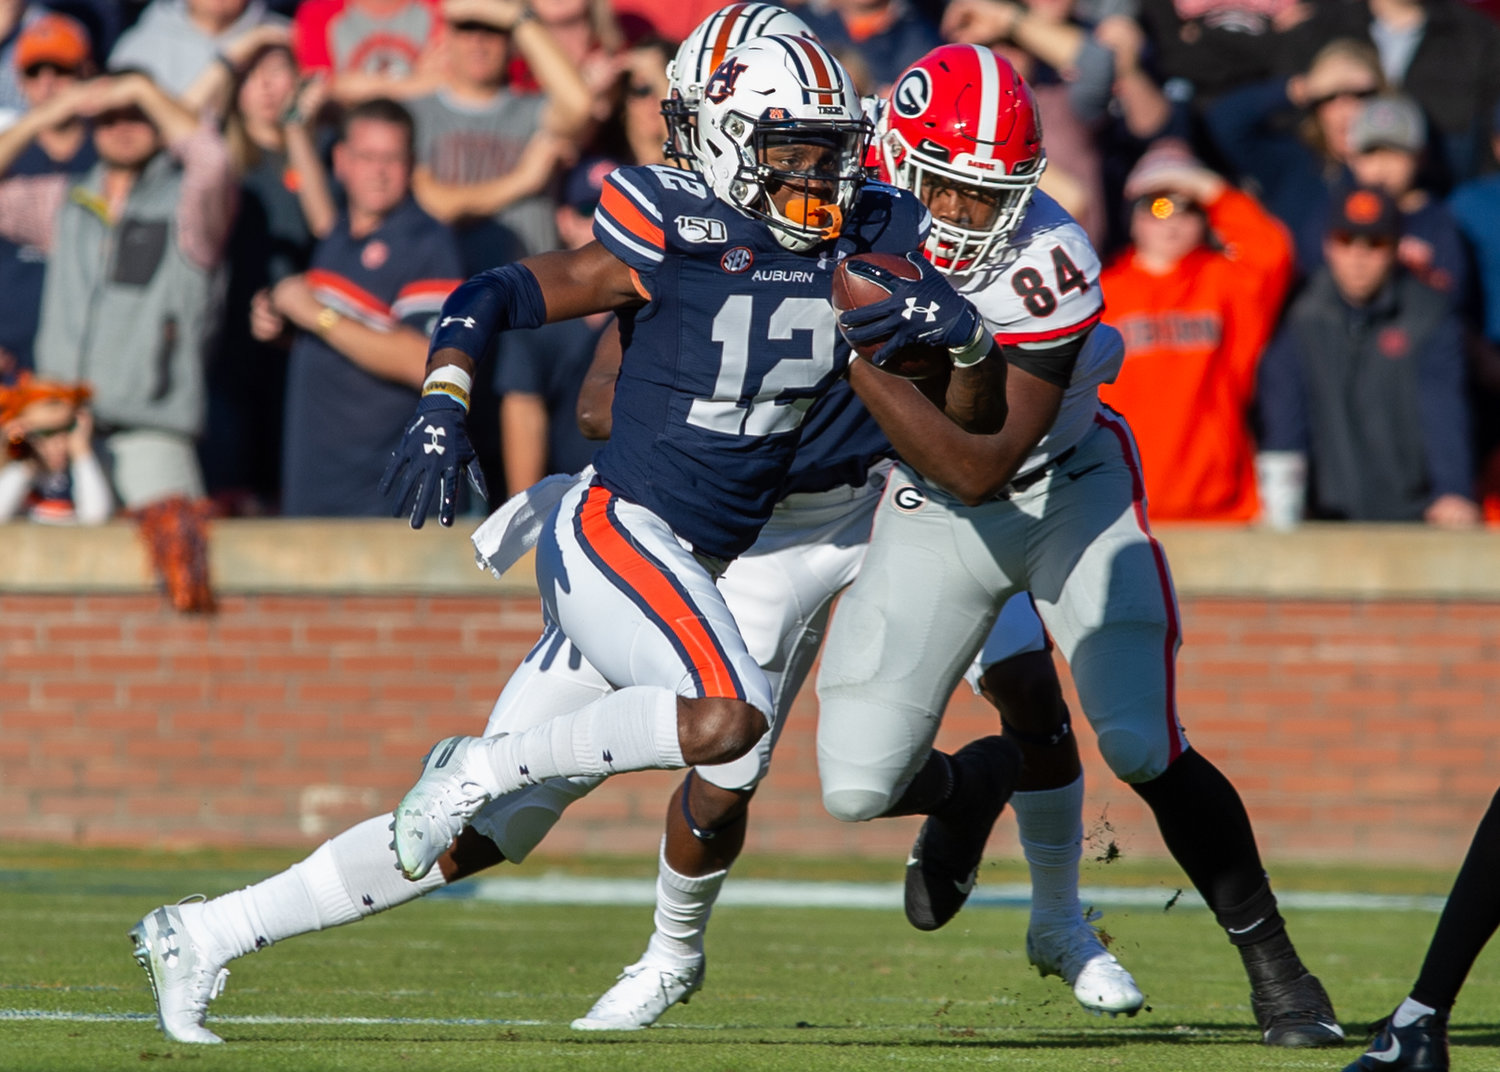 Auburn Tigers wide receiver Eli Stove (12) breaks free during the first half of Saturday's game, at Jordan-Hare Stadium in Auburn,, AL. Daily Mountain Eagle -  Jeff Johnsey